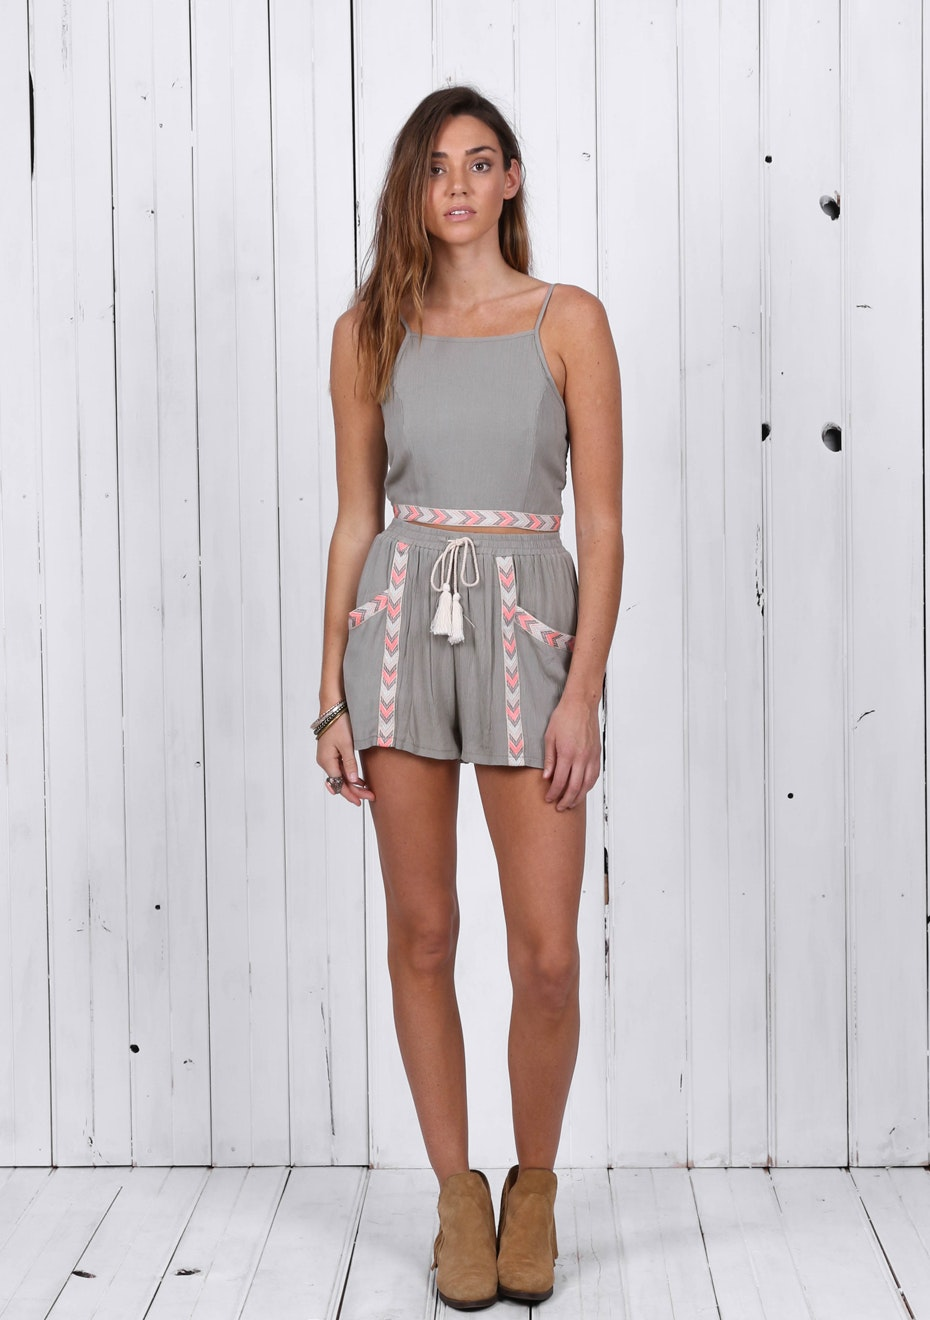 Madison - POCAHONTAS SHORTS - KHAKI